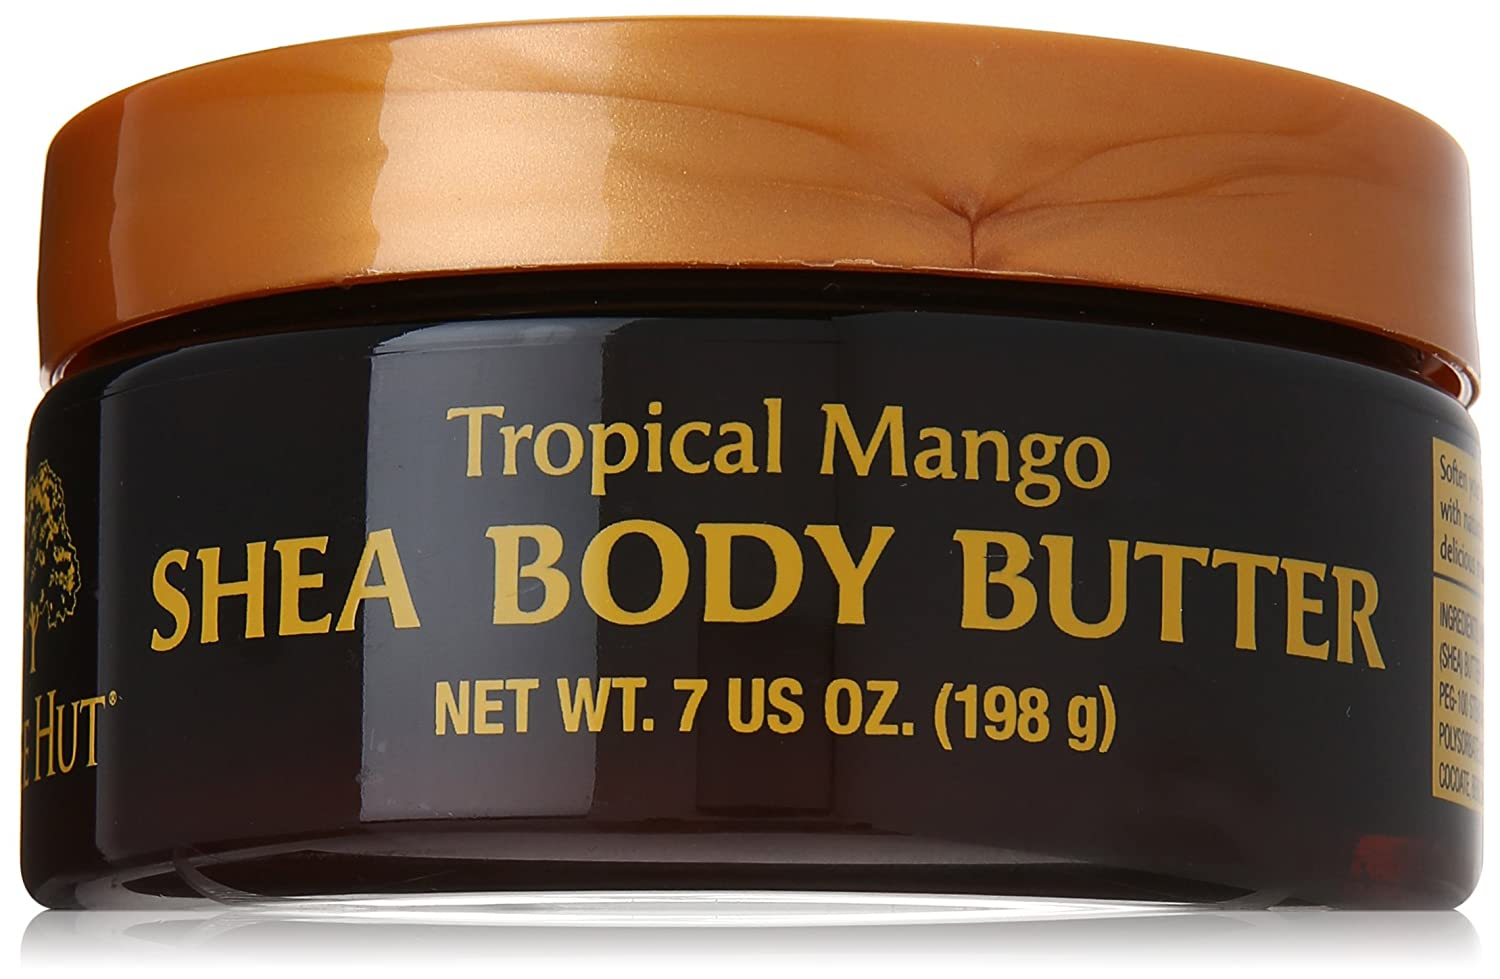 Tree Hut Shea Body Butter 7oz Tropical Mango (3 Pack)